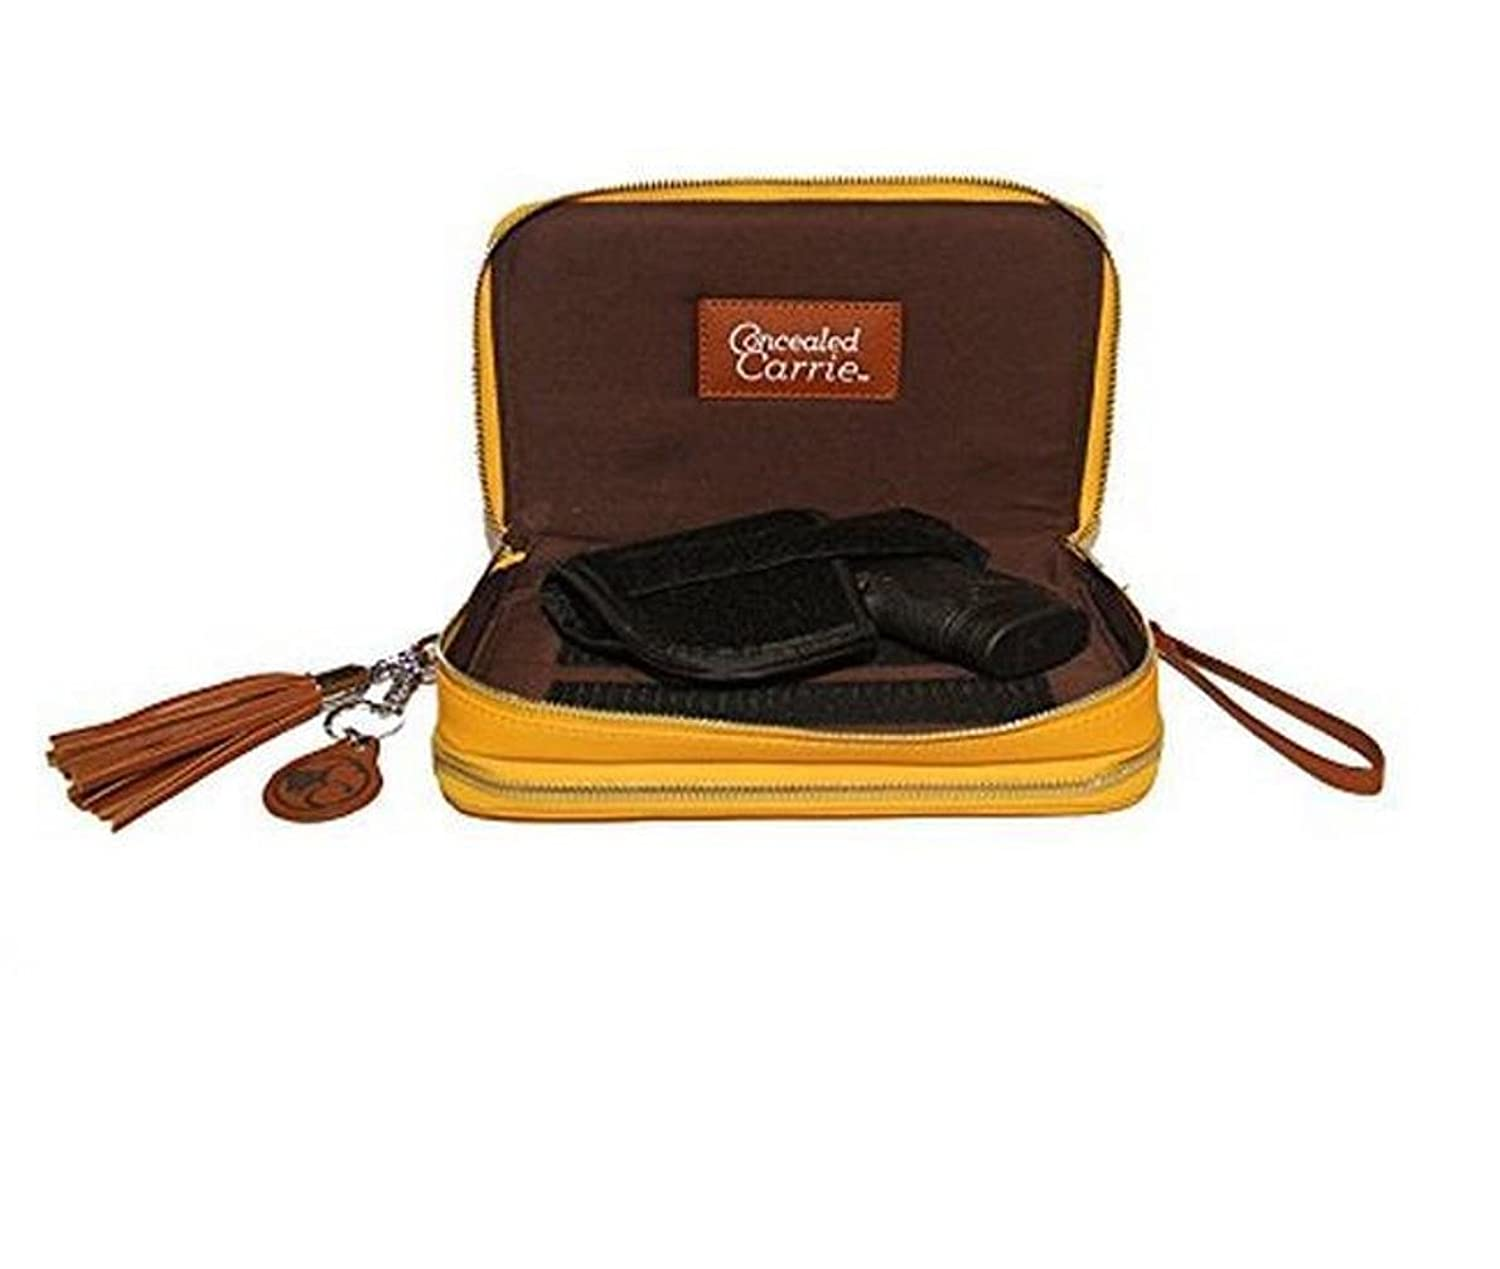 Concealed Carrie Mustard Compact Carrie Firearm Bag